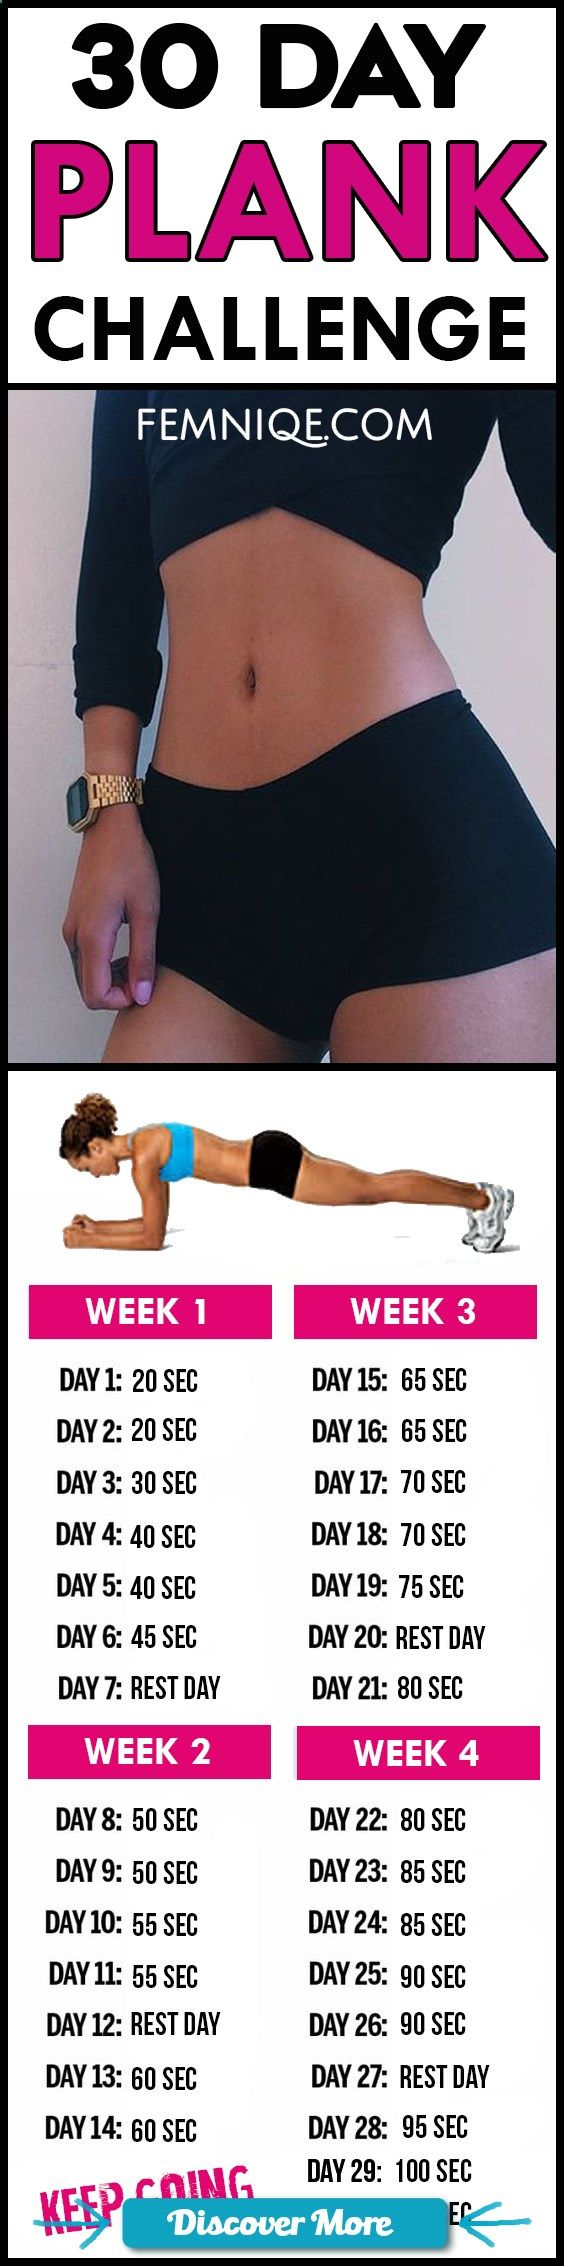 Powerful 30 day plank challenge for beginners before and after results - Try this 30 day challenge for beginners will help you get a flat belly and smaller waist. #fitnessbeforeandafterpictures, #weightlossbeforeandafterpictures, #beforeandafterweightloss https://www.musclesaurus.com/